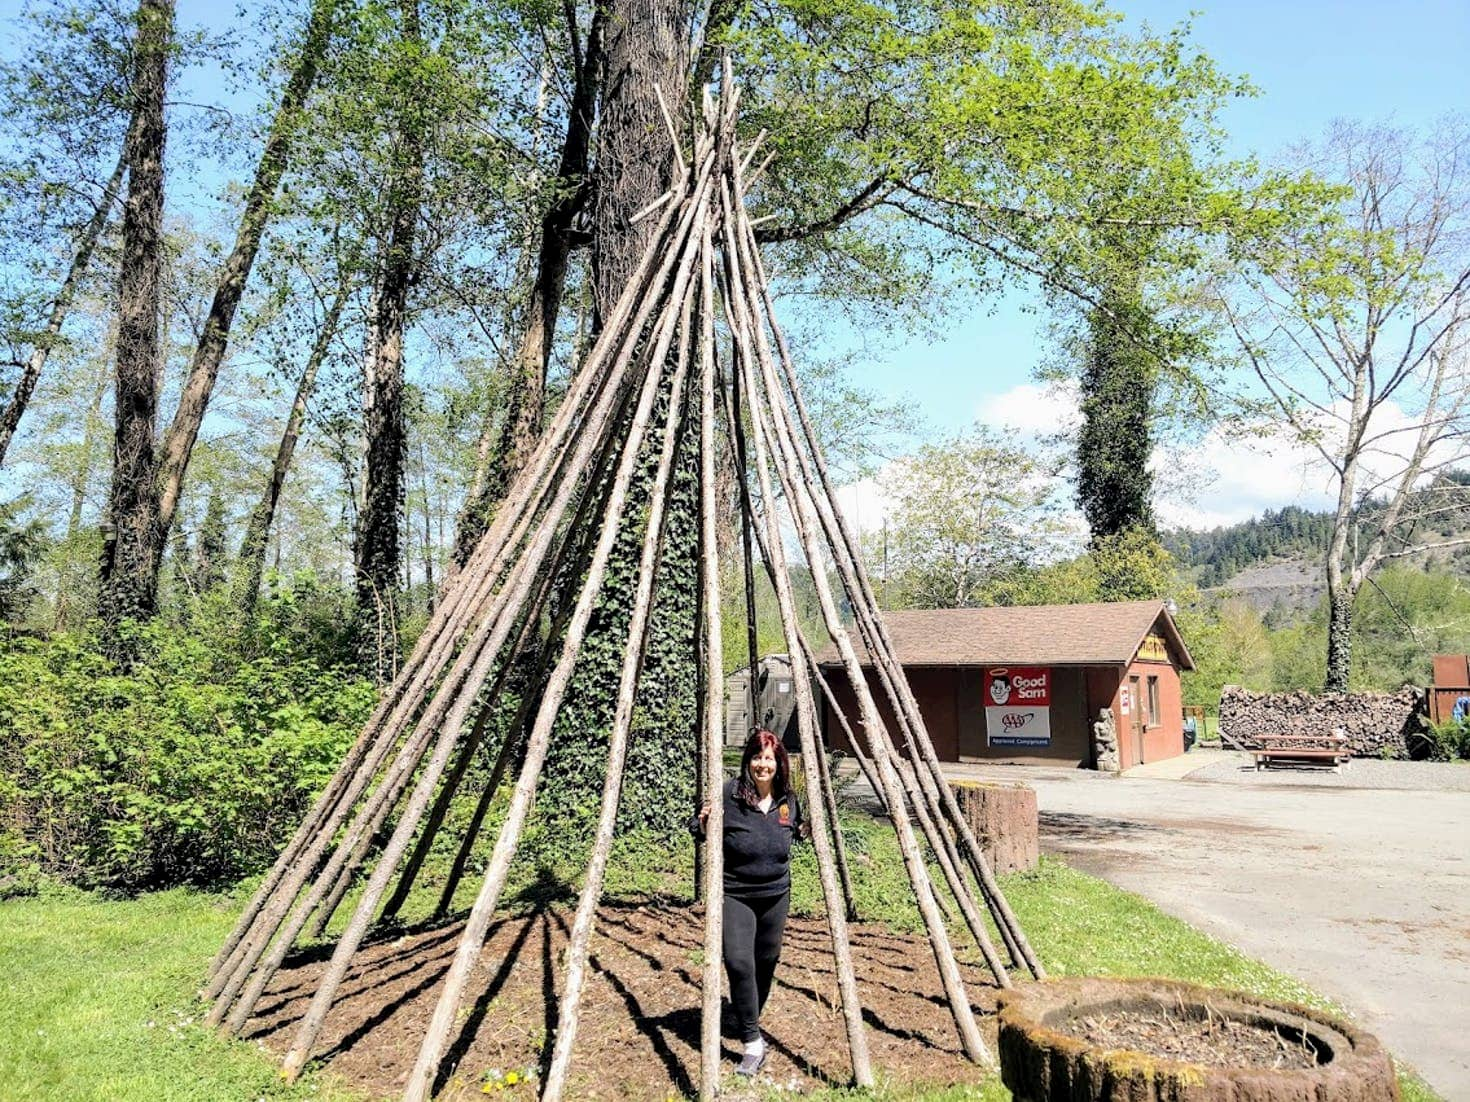 Women standing inside of a large teepee.